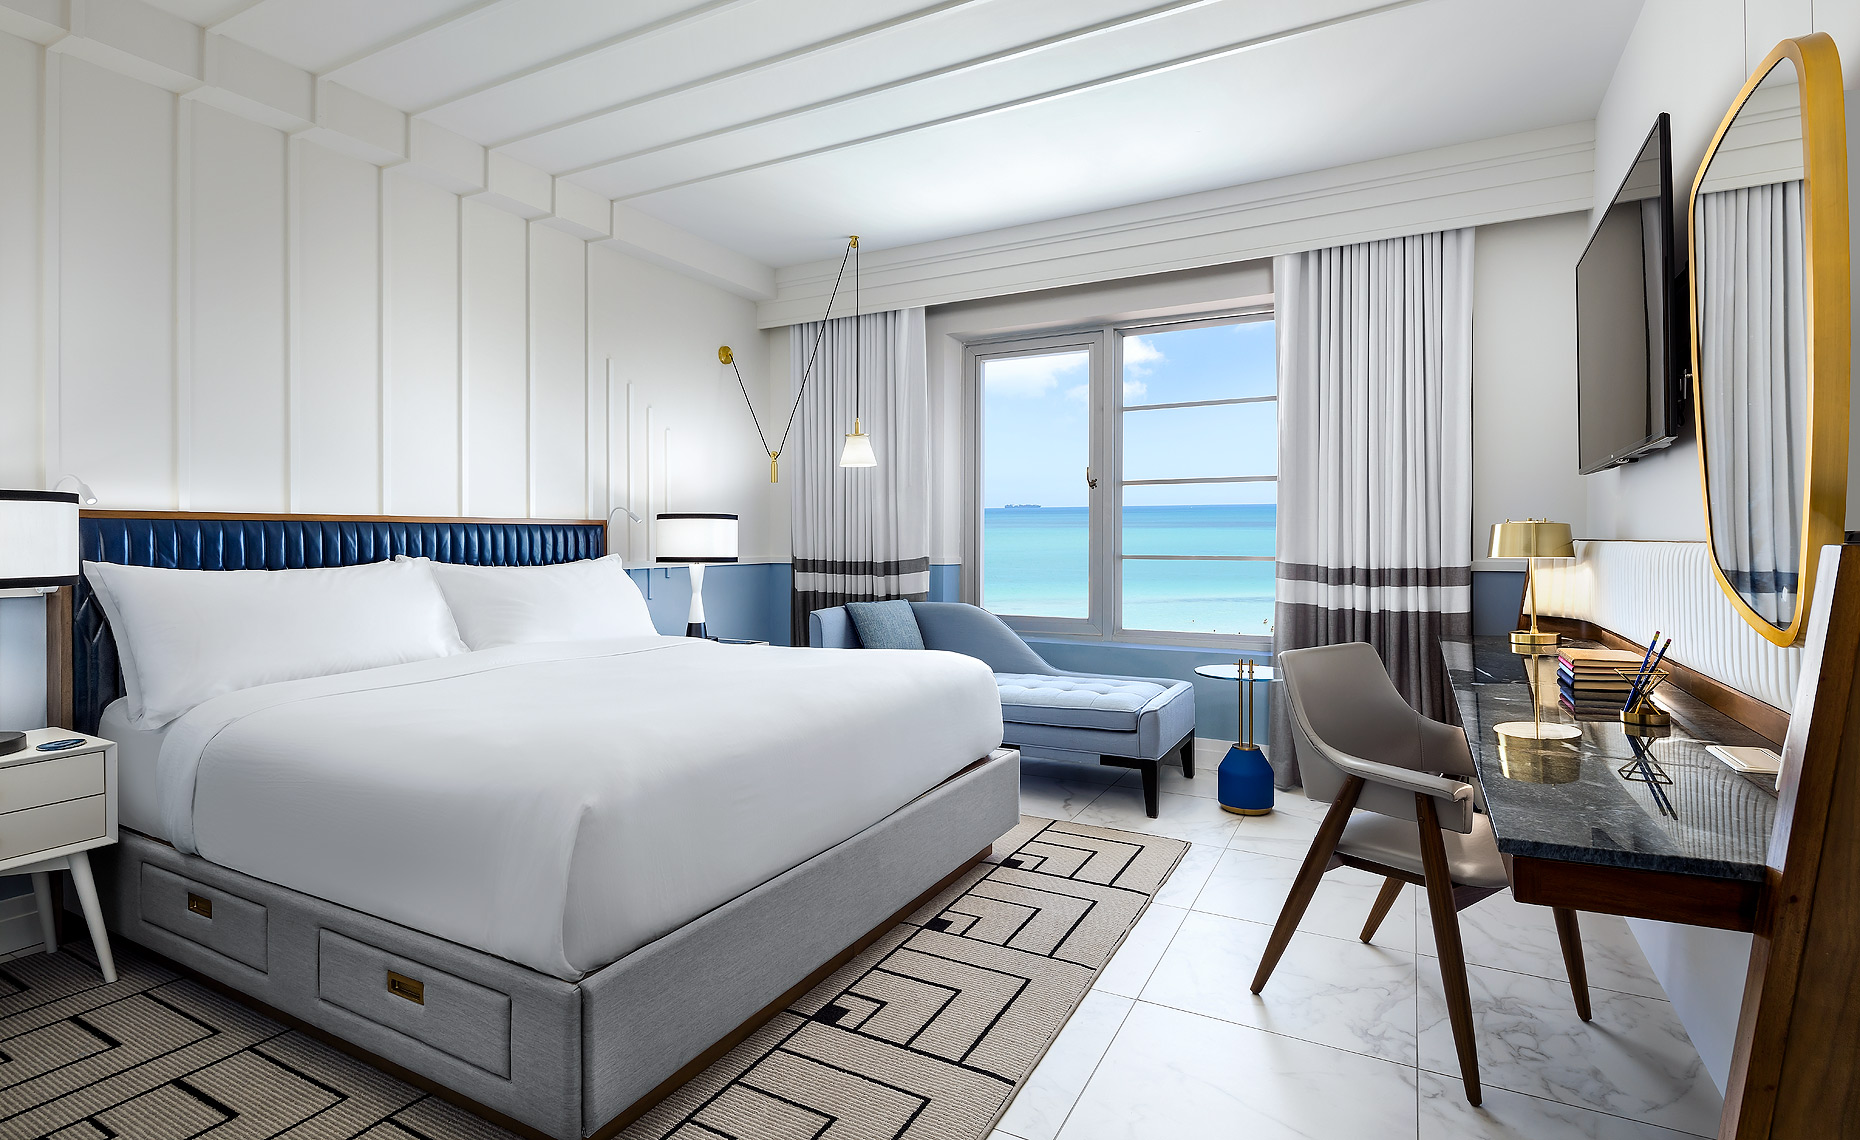 The Cadillac Hotel guestroom in Miami Beach by Brandon Barré, Boutique Hotel Photogrpaher